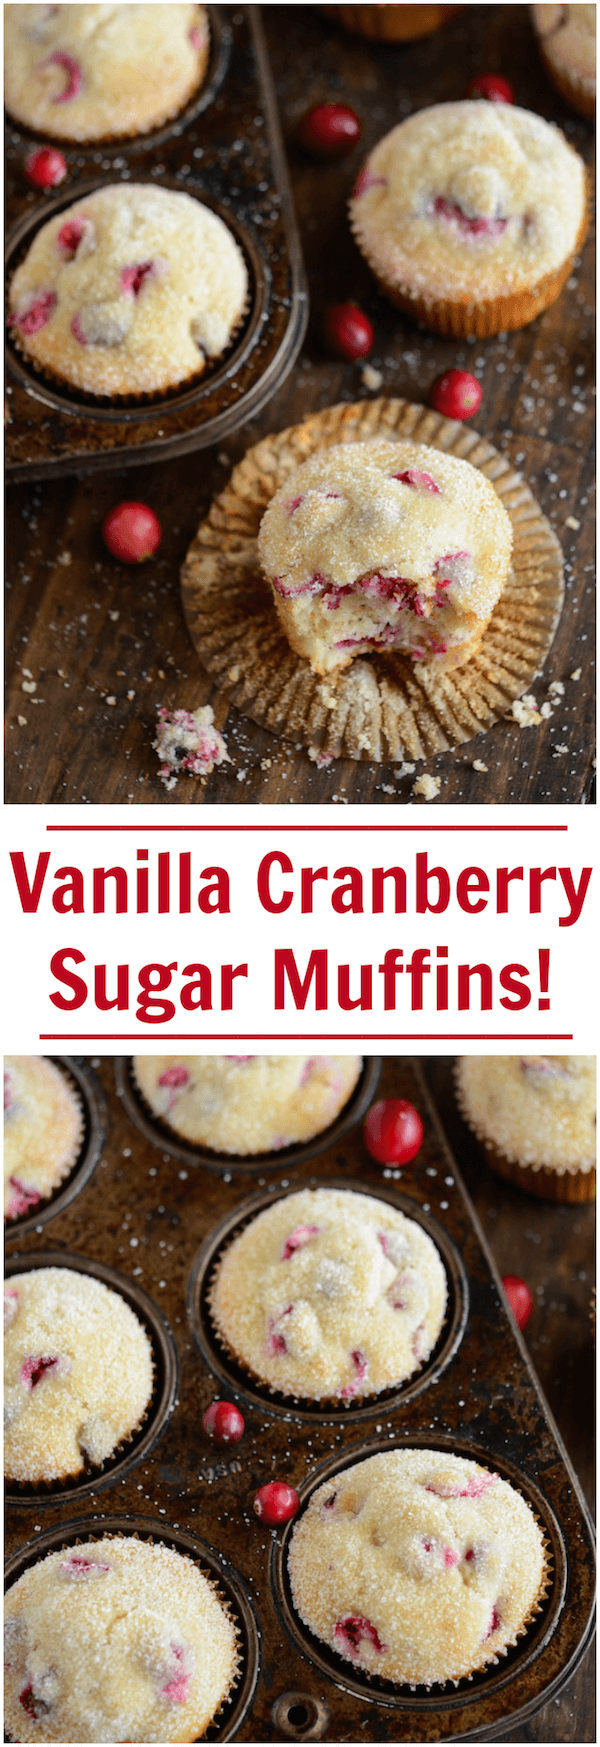 Vanilla Cranberry Sugar Muffins - 30 minutes start to finish!